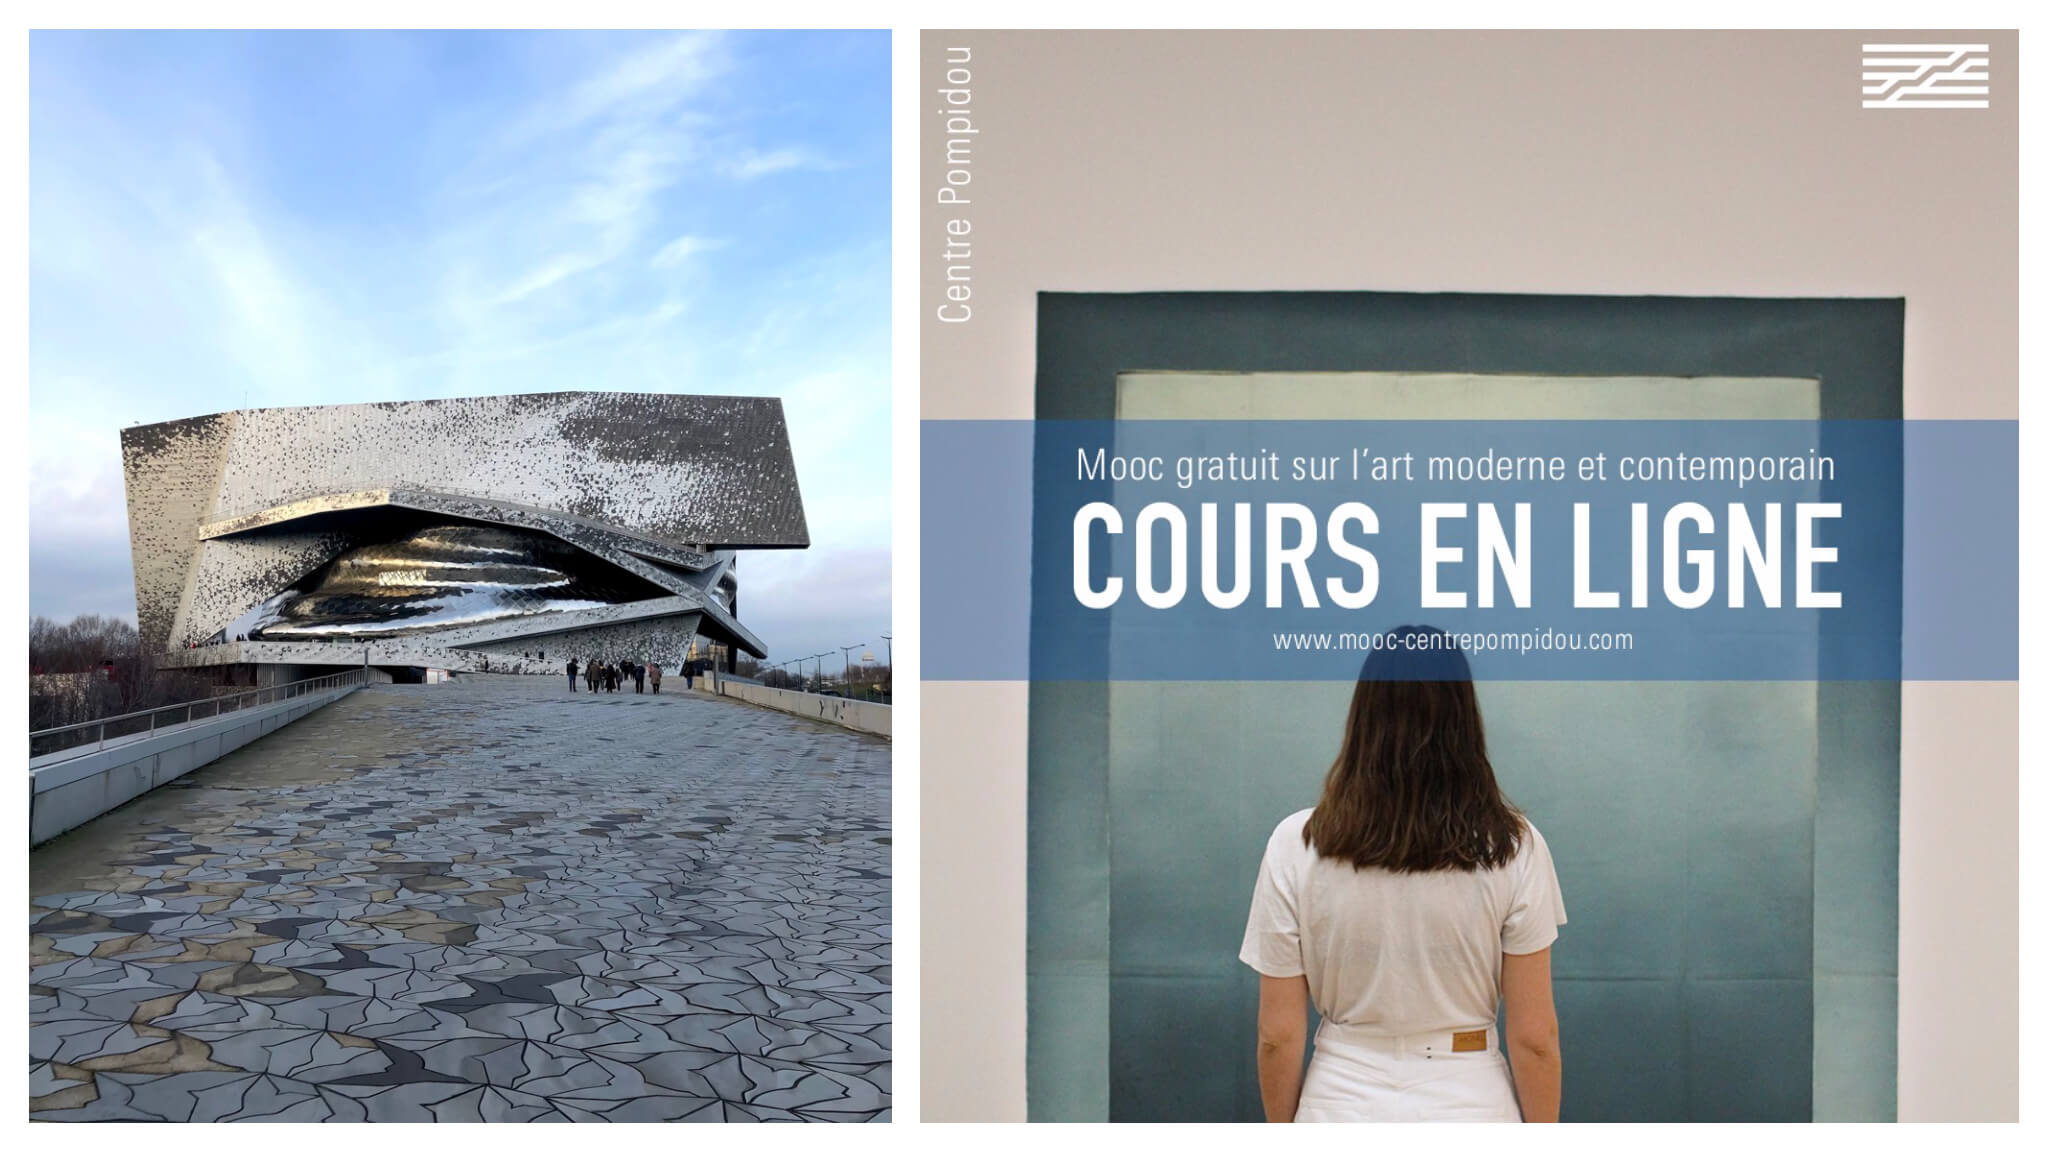 Left: the Philharmonie de Paris building in front of a blue sky. There is a grey tiled walkway leading up to the building. The building appears silver and shimmering in the light. Right: a promotional image for the modern and contemporary art course at Centre Pompidou. There is a brunette girl in white standing in front of an artwork. There is French text across the image.